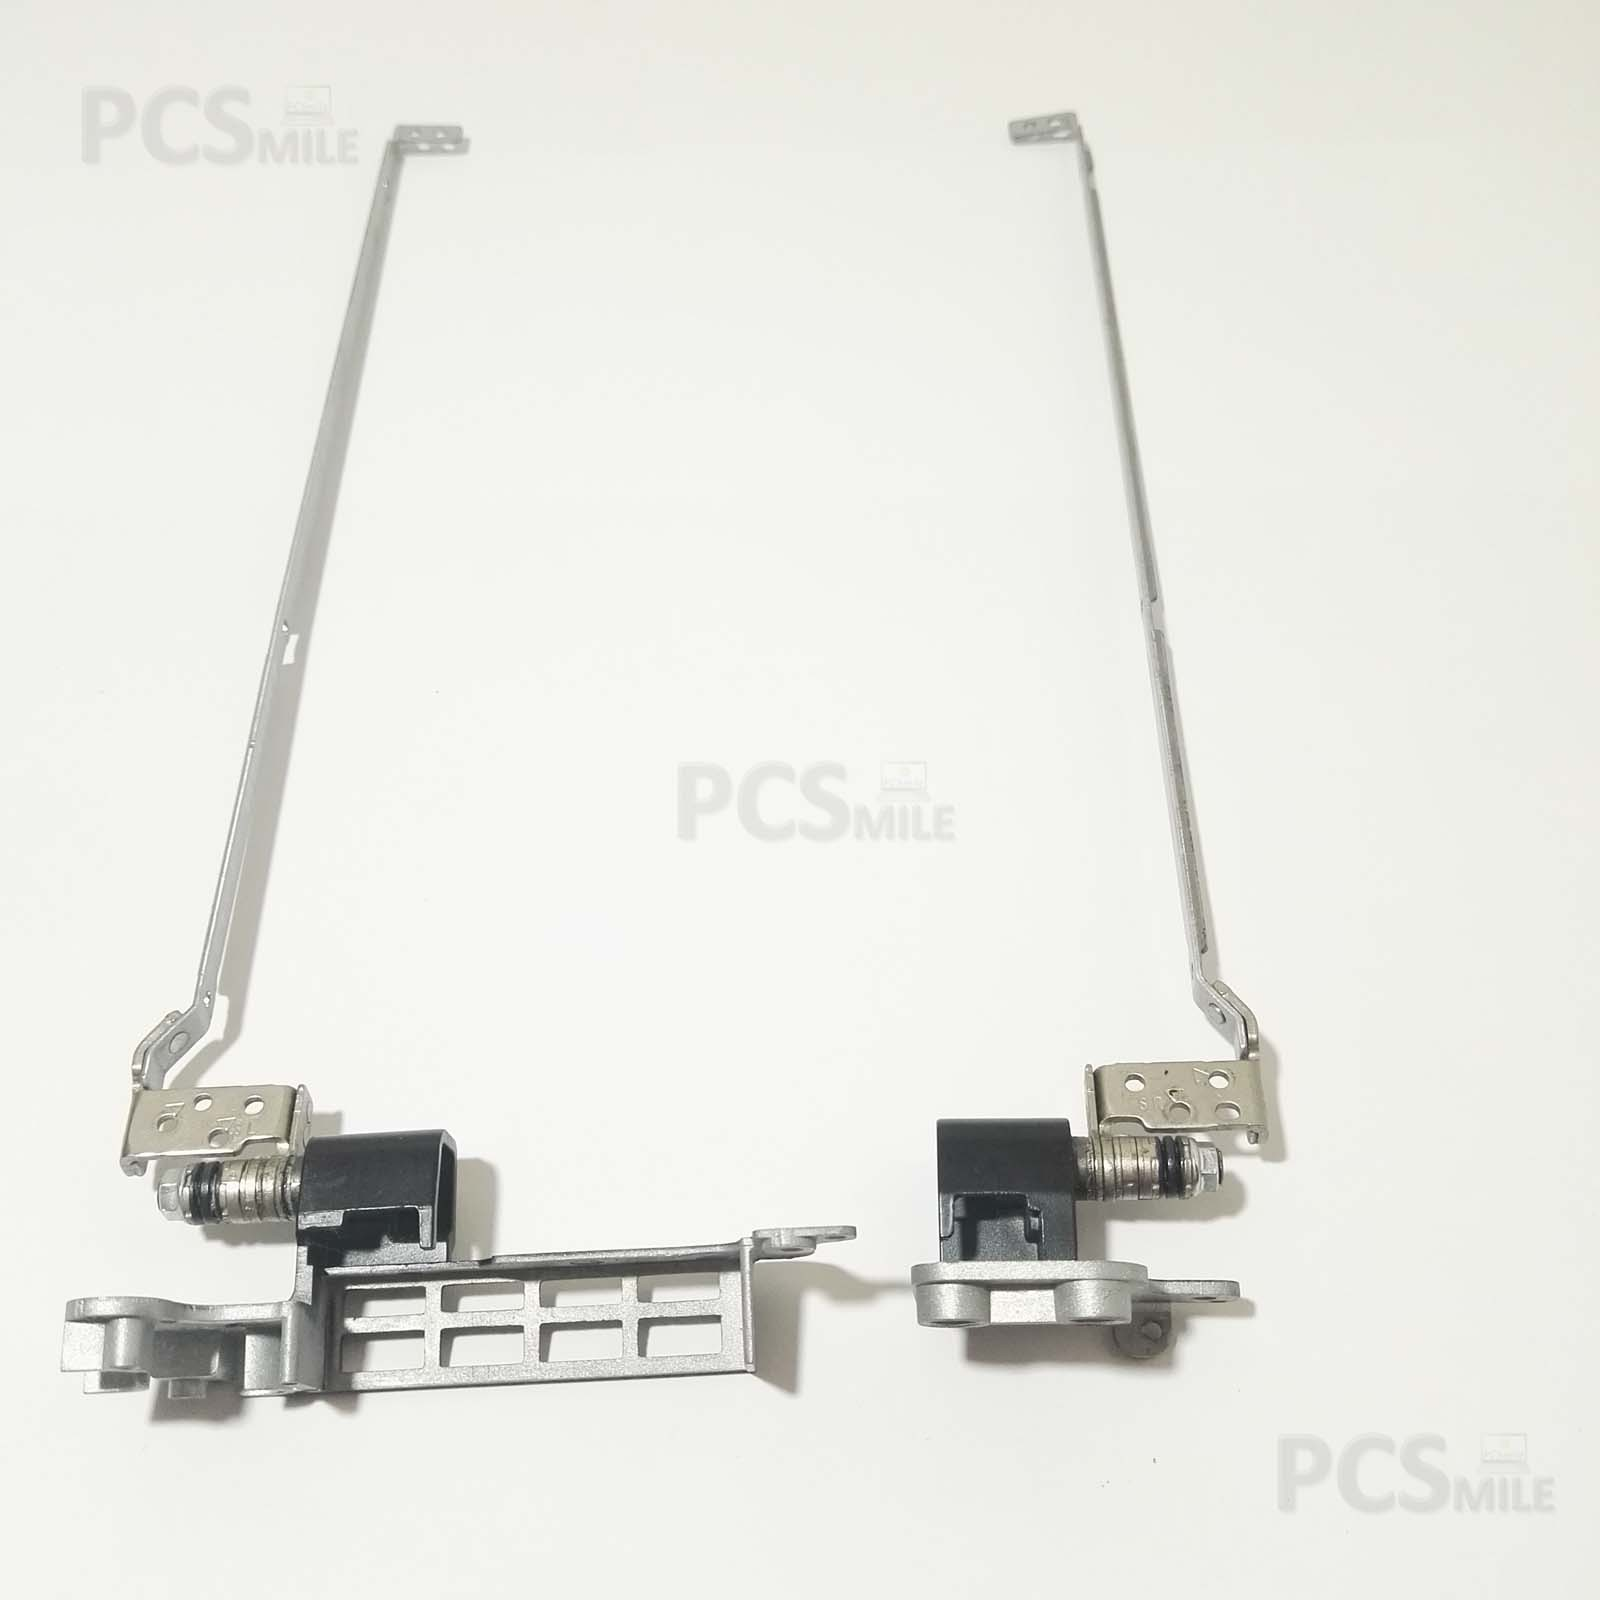 Cerniere originali Lenovo ThinkPad Edge 15 Staffe Bracket supporti LCD display